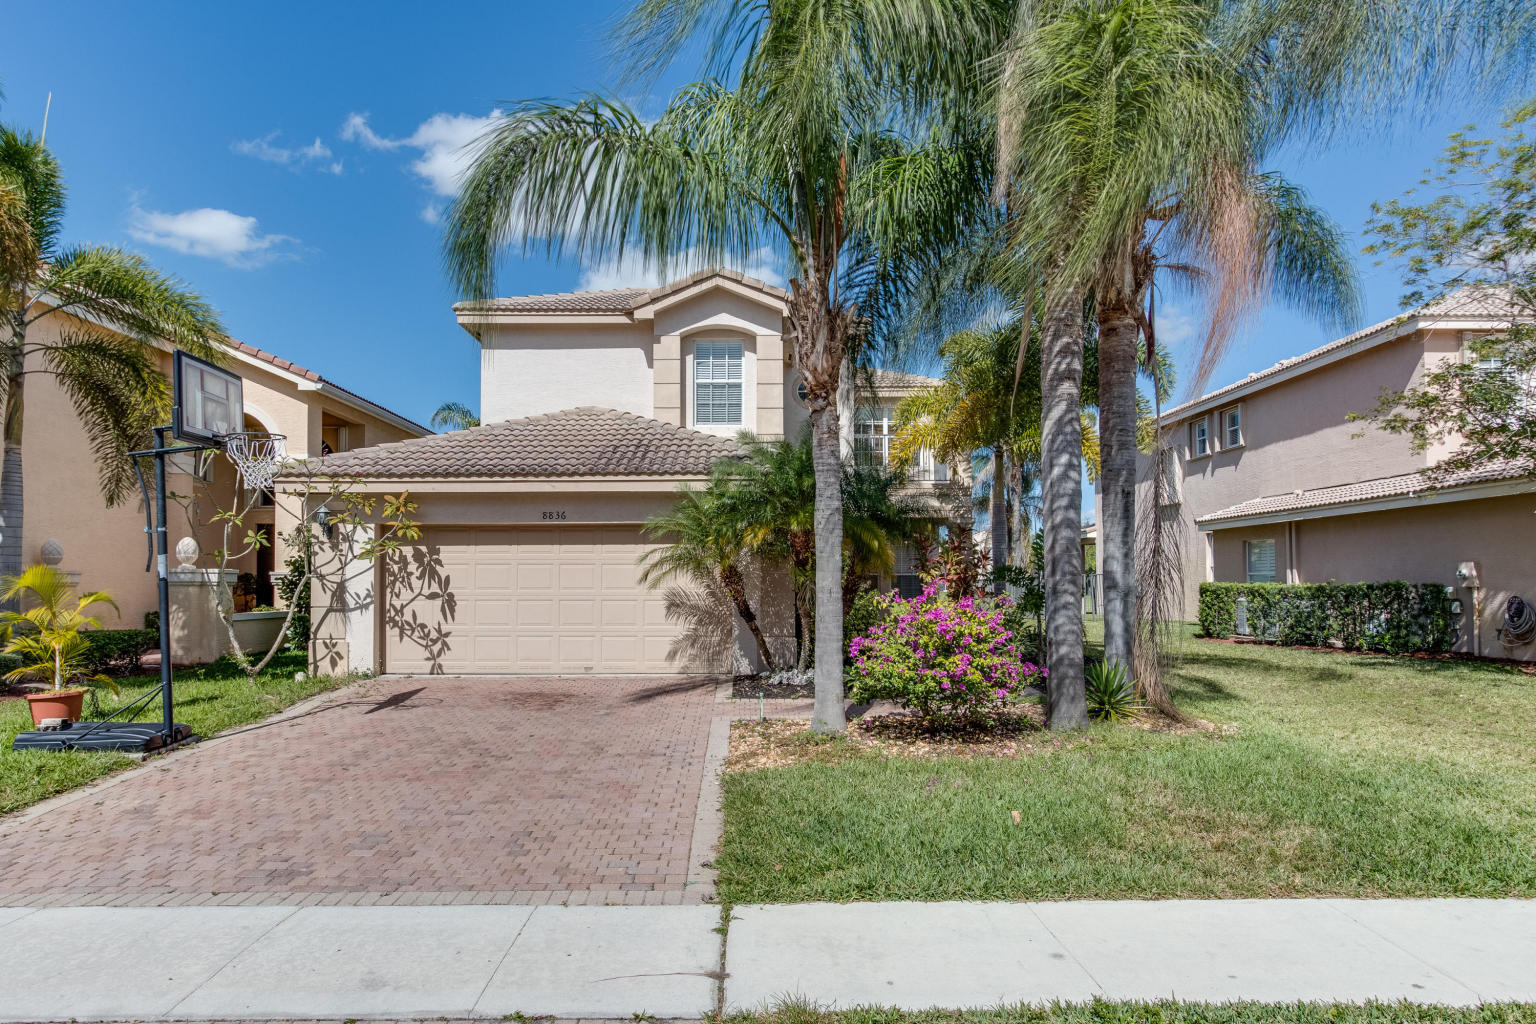 8836 Sandy Crest Lane, Boynton Beach, Florida 33473, 4 Bedrooms Bedrooms, ,2.1 BathroomsBathrooms,Single Family,For Sale,CANYON ISLES,Sandy Crest,RX-10461024